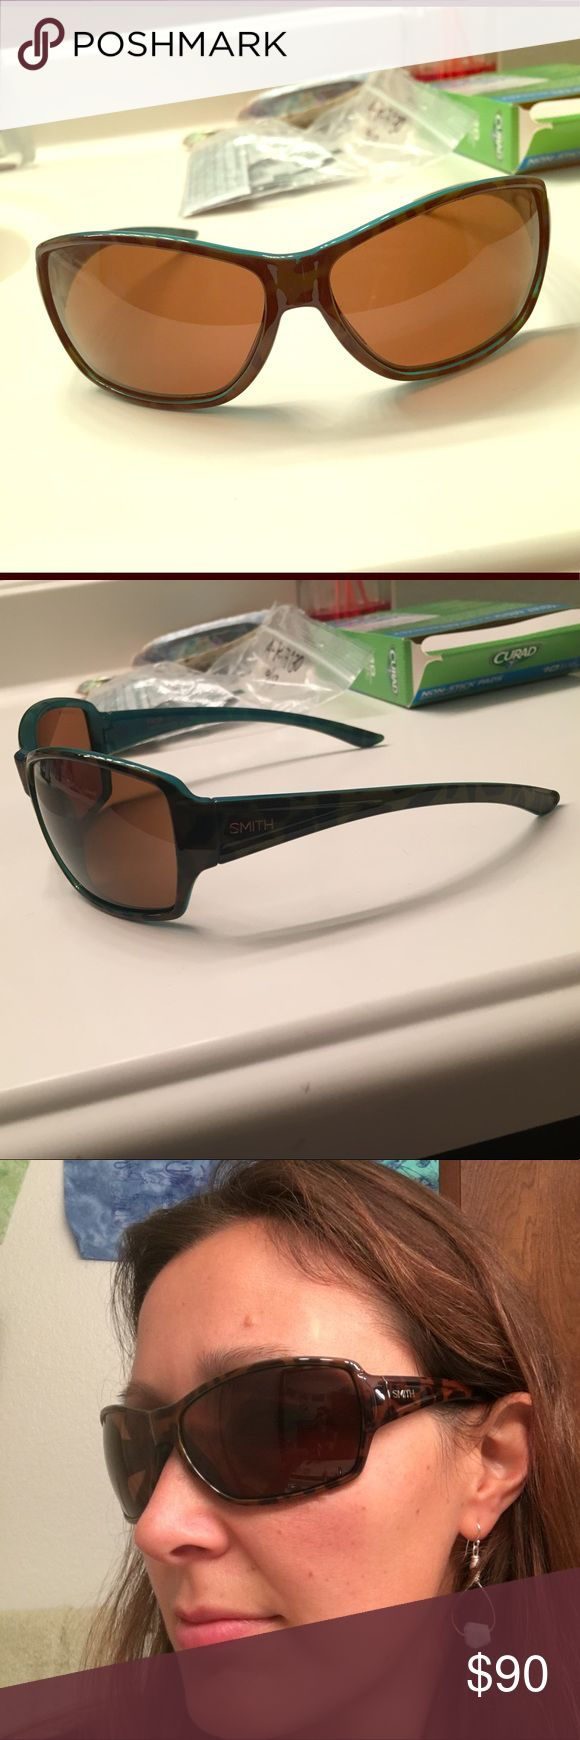 Smith Women's Pace sunglasses Smith Women's Pace Sunglasses. Polarized and Chromapop lenses. Color: torte and marine. A scratch on right lense, shown in 4th photo, not in direct vision field; otherwise in great condition. Smith Optics Accessories Sunglasses